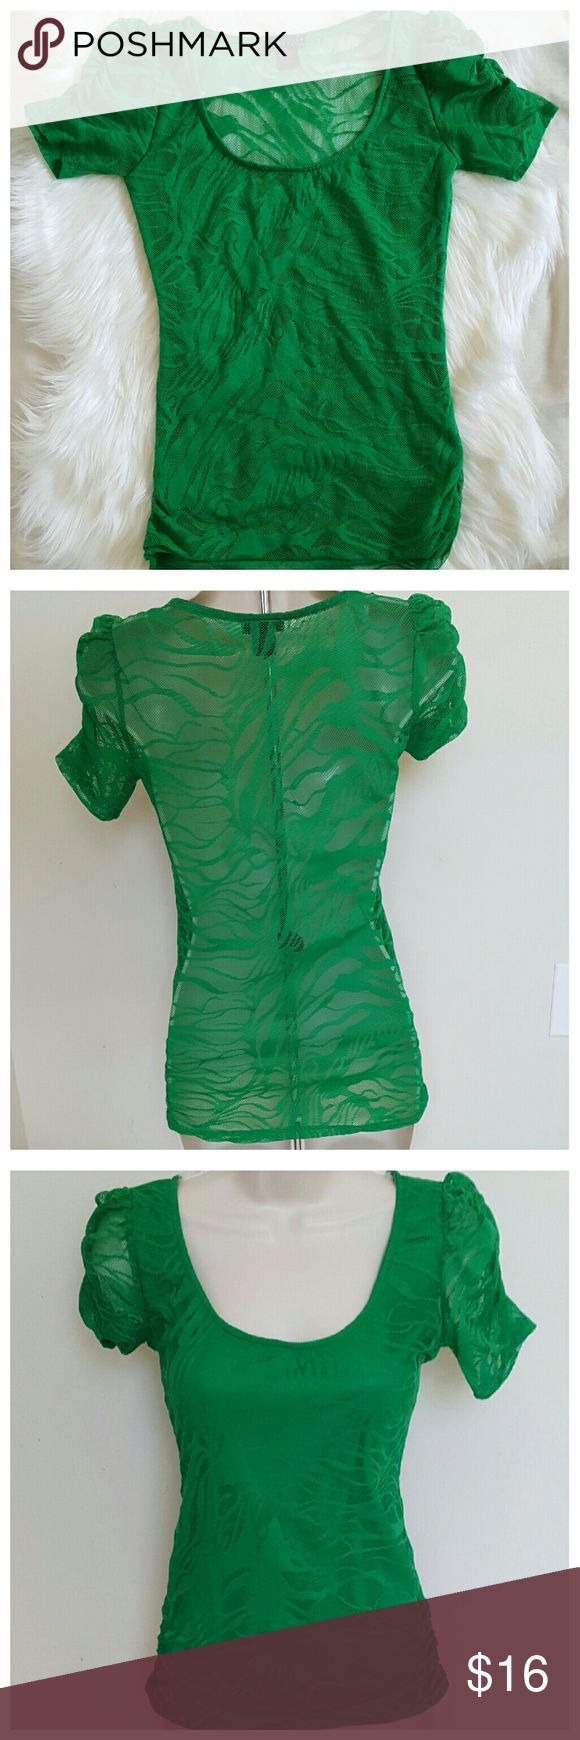 NWOT Green Lace Short Sleeve St. Patty's T-Shirt Short sleeved top from Wetseal, small. Green lace. Including all measurements in the pics. Made in USA! 95% Polyester/5% Spandex. Perfect for St. Patrick's Day! This is absolutely adorable lace top with see through back side. New without tags. Re-posh due to sizing, I have taken pics of measurements to assure best fit for its new home. Wet Seal Tops Tees - Short Sleeve